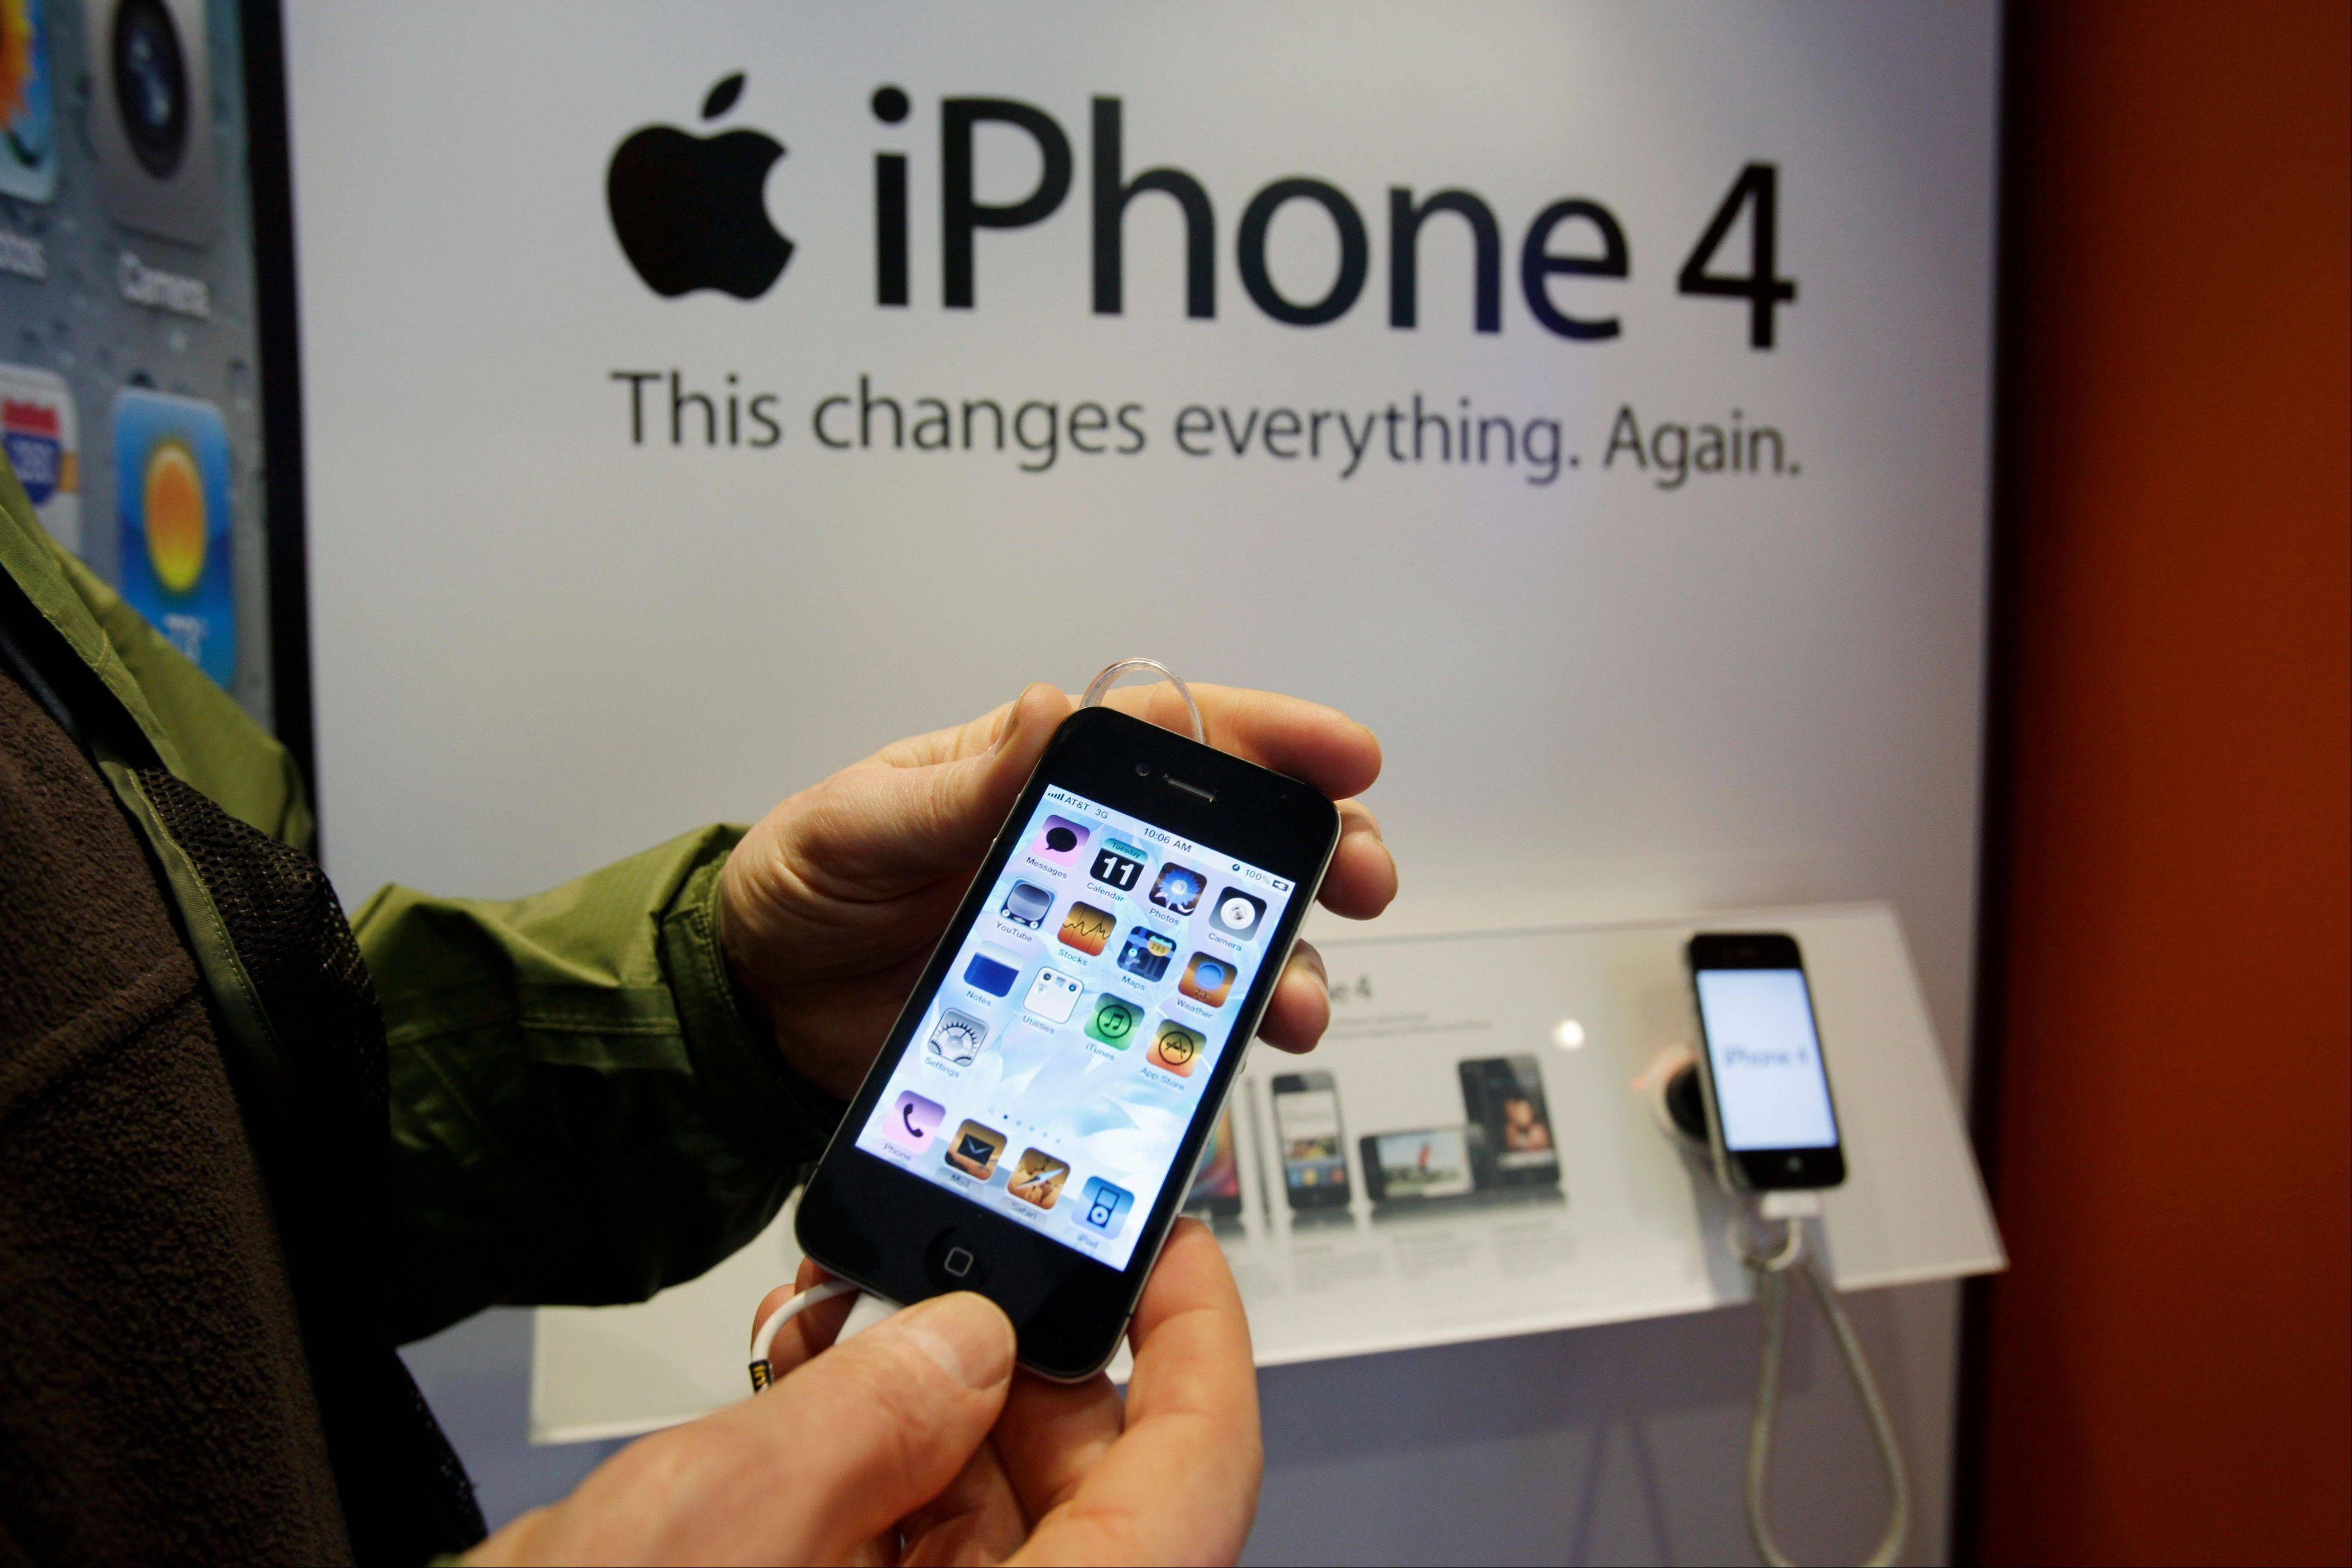 A U.S. trade agency on Tuesday issued a ban on imports of Apple�s iPhone 4 and a variant of the iPad 2 after finding the devices violate a patent held by South Korean rival Samsung Electronics. On Tuesday, the White House issued a recommendation to Congress that it limit the ITC�s ability to impose import bans in these cases.